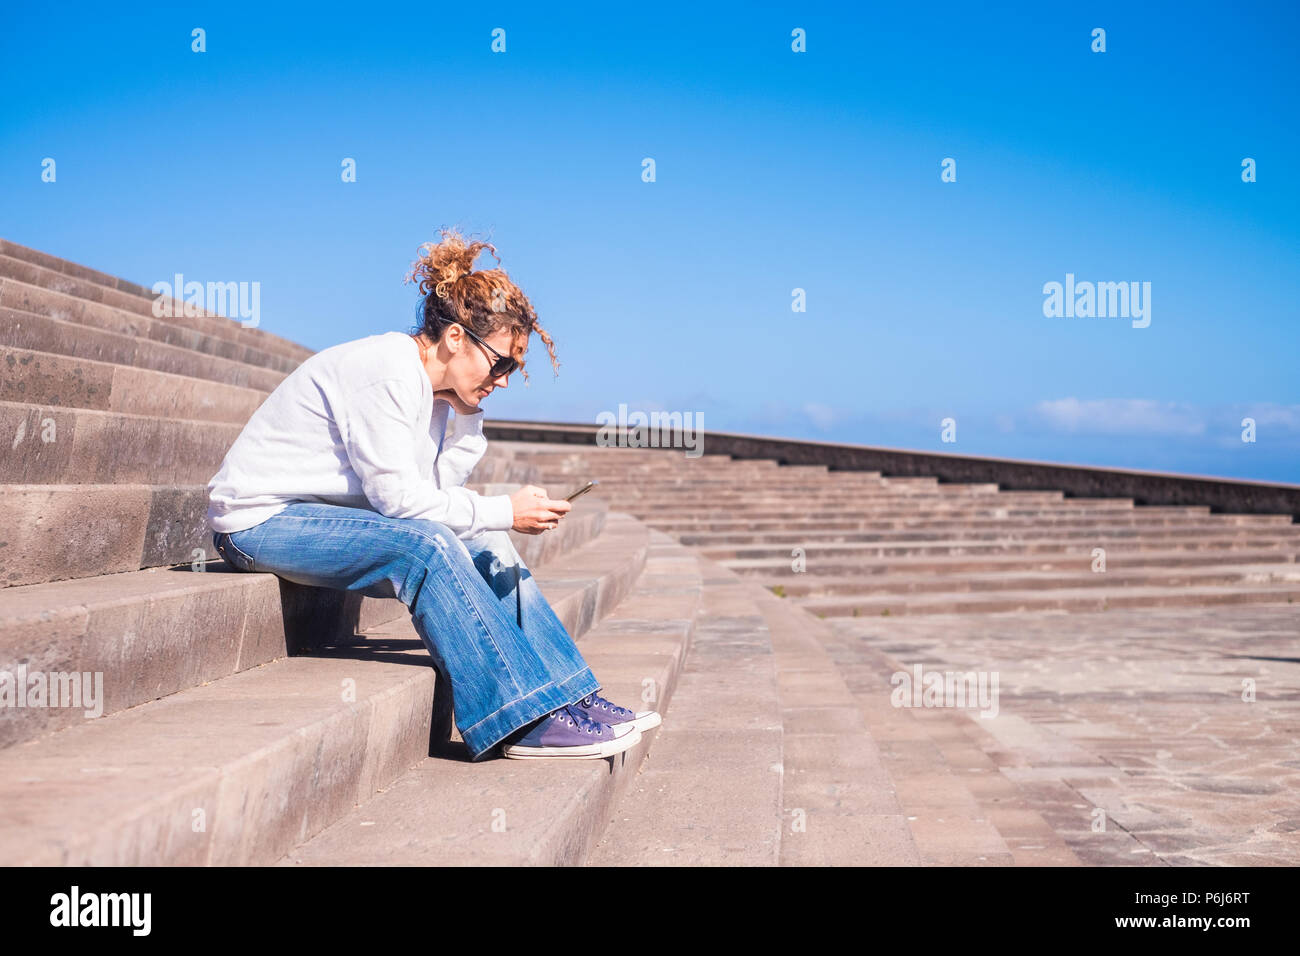 Chat Stock Photos & Chat Stock Images - Alamy